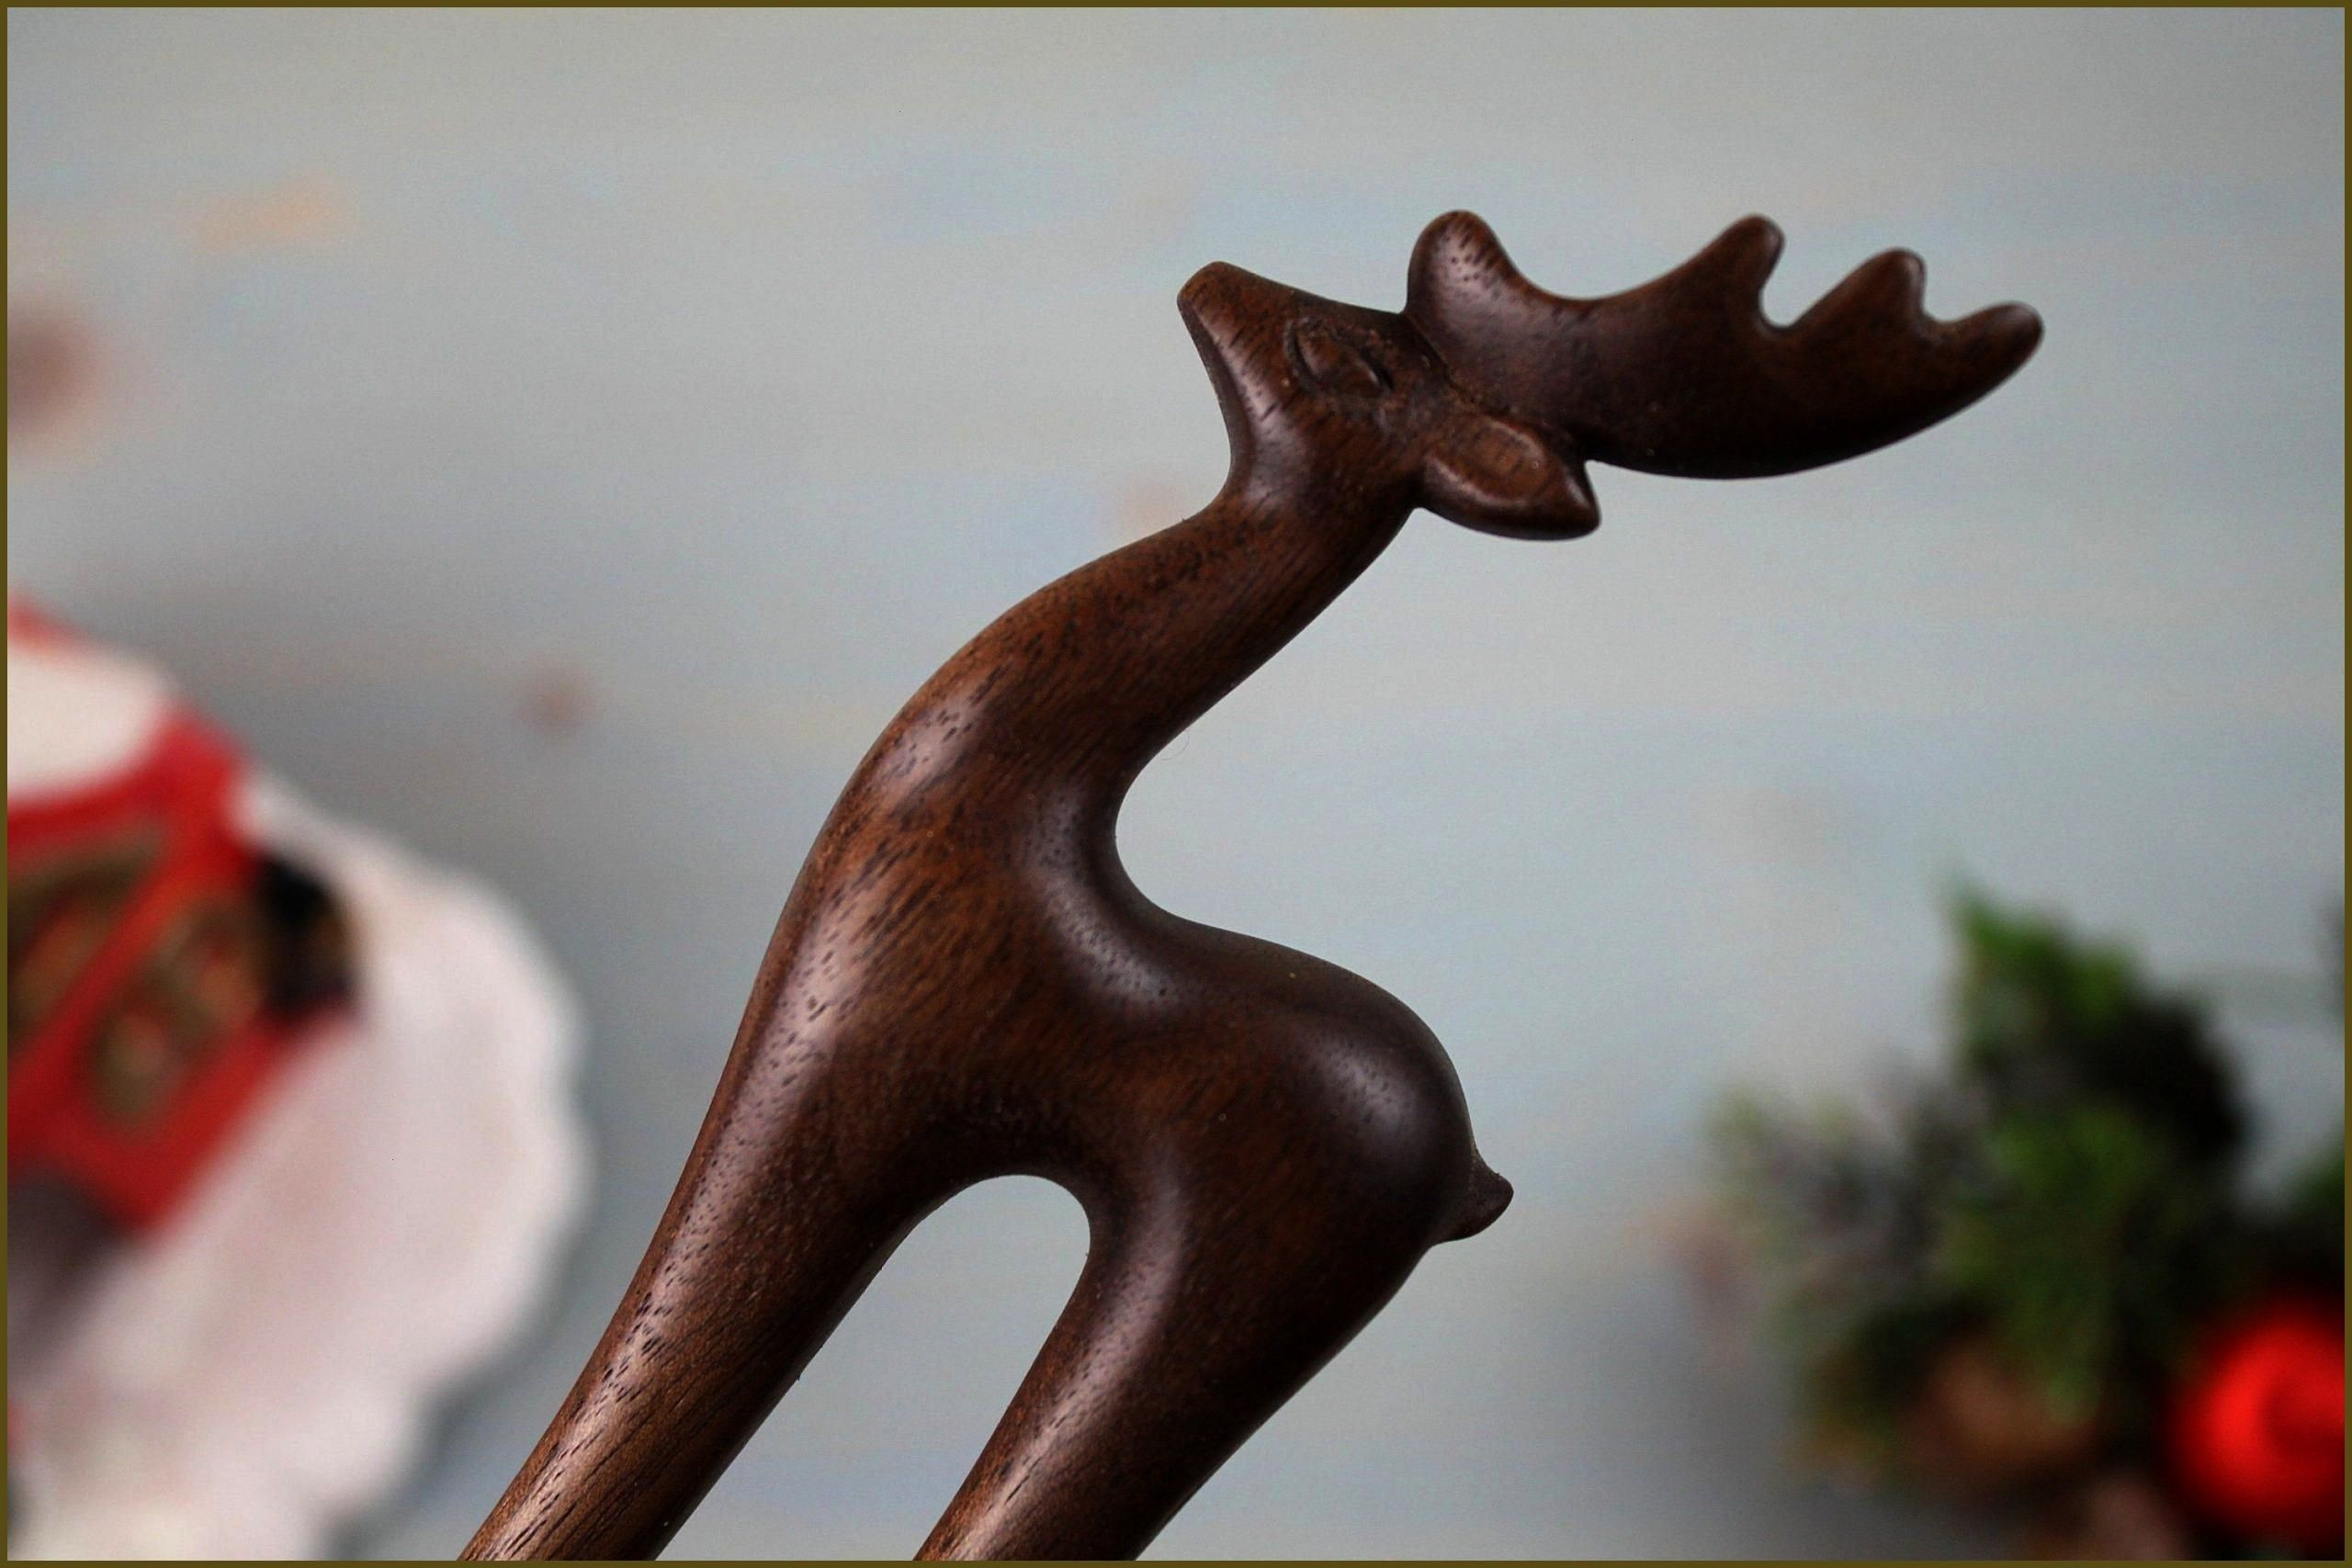 Deer Hair Fork, Christmas Hairpin, Deer Hair Stick, Christmas Hair Accessories for Wom... Walnut Deer Hair Fork, Christmas Hairpin, Deer Hair Stick, Christmas Hair Accessories for Women, Gift for Daughter, Bun Holder, Wood Hairpin,Walnut Deer Hair Fork, Christmas Hairpin, Deer Hair Stick, Christmas Hair Accessories for Women, Gift for Daughter, ...